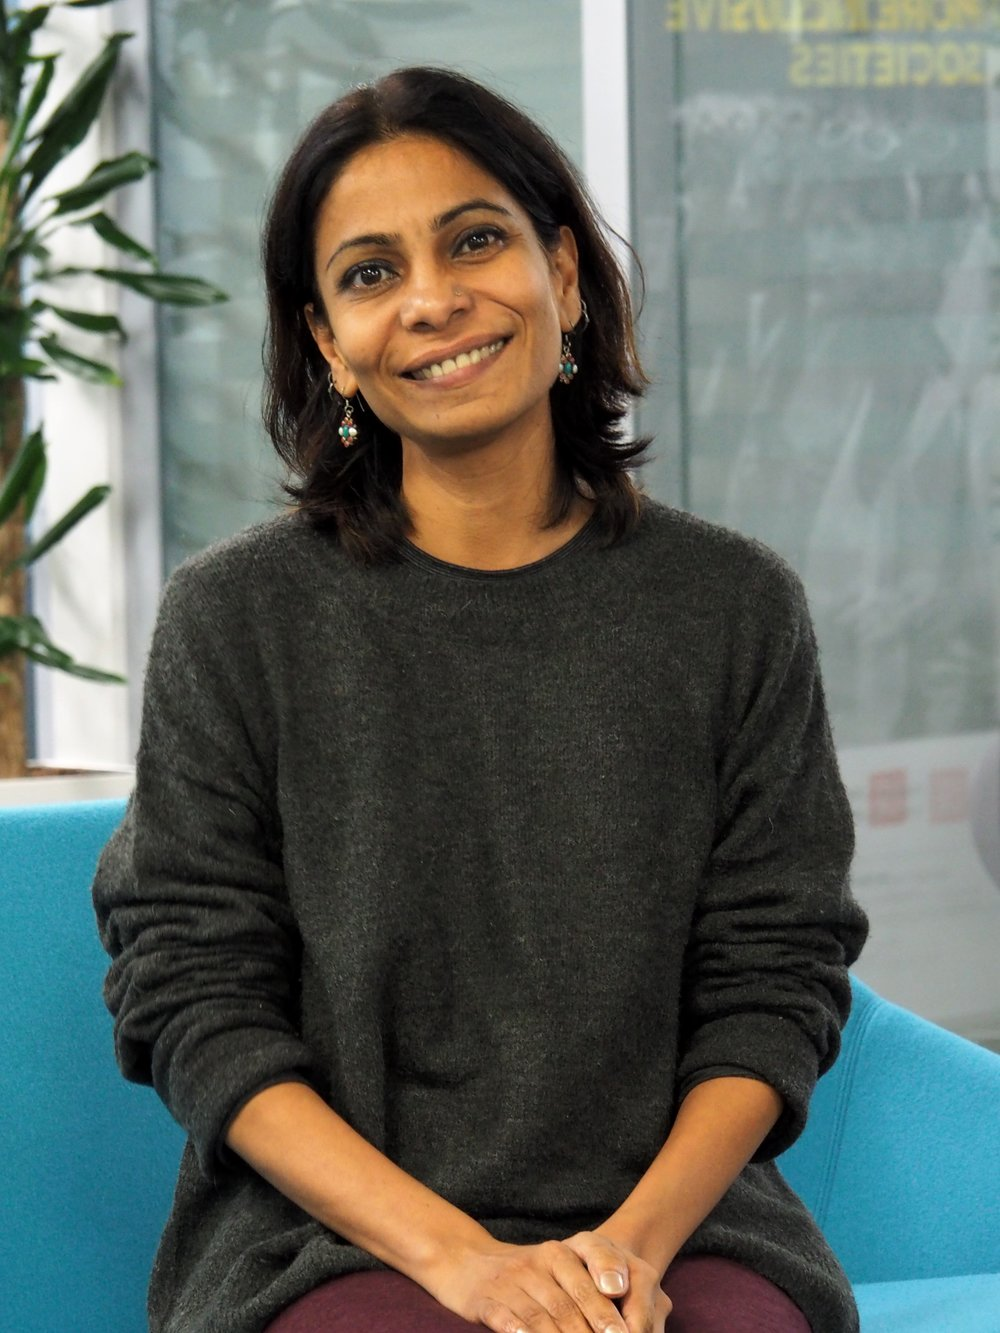 Vinitika Lal - Visiting Atlantic Fellow